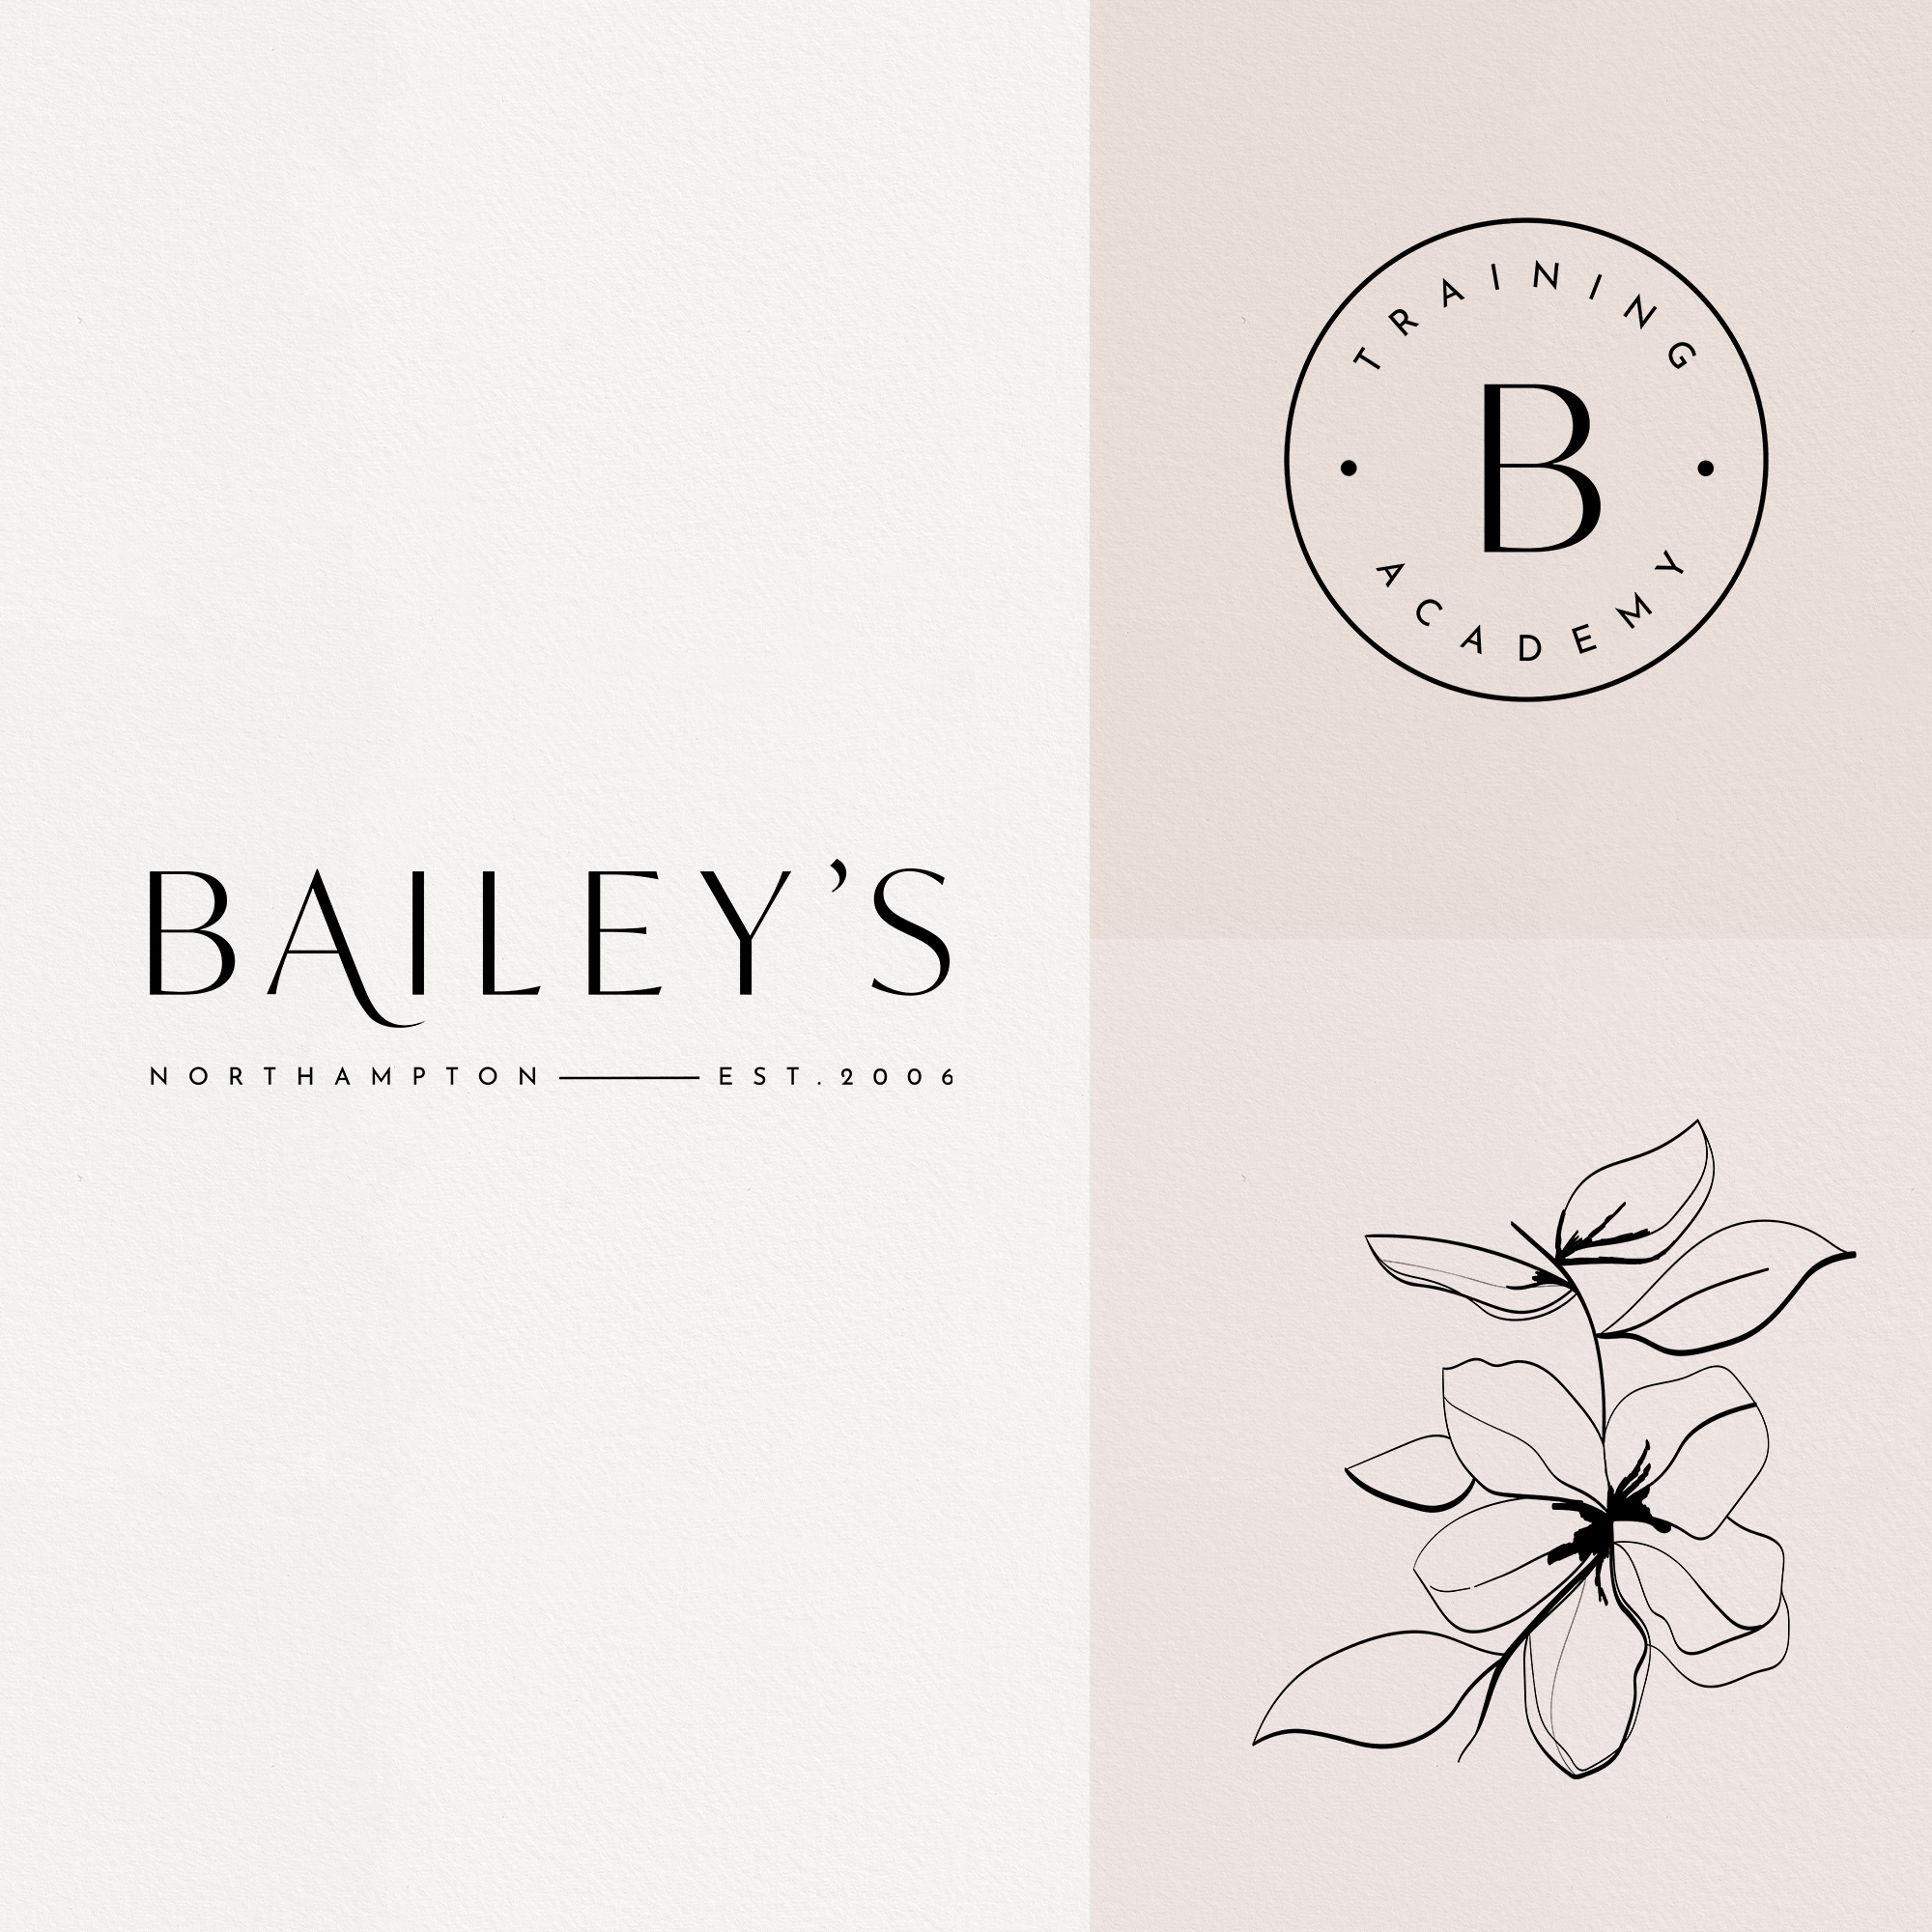 Bailey's Northampton illustration and logo